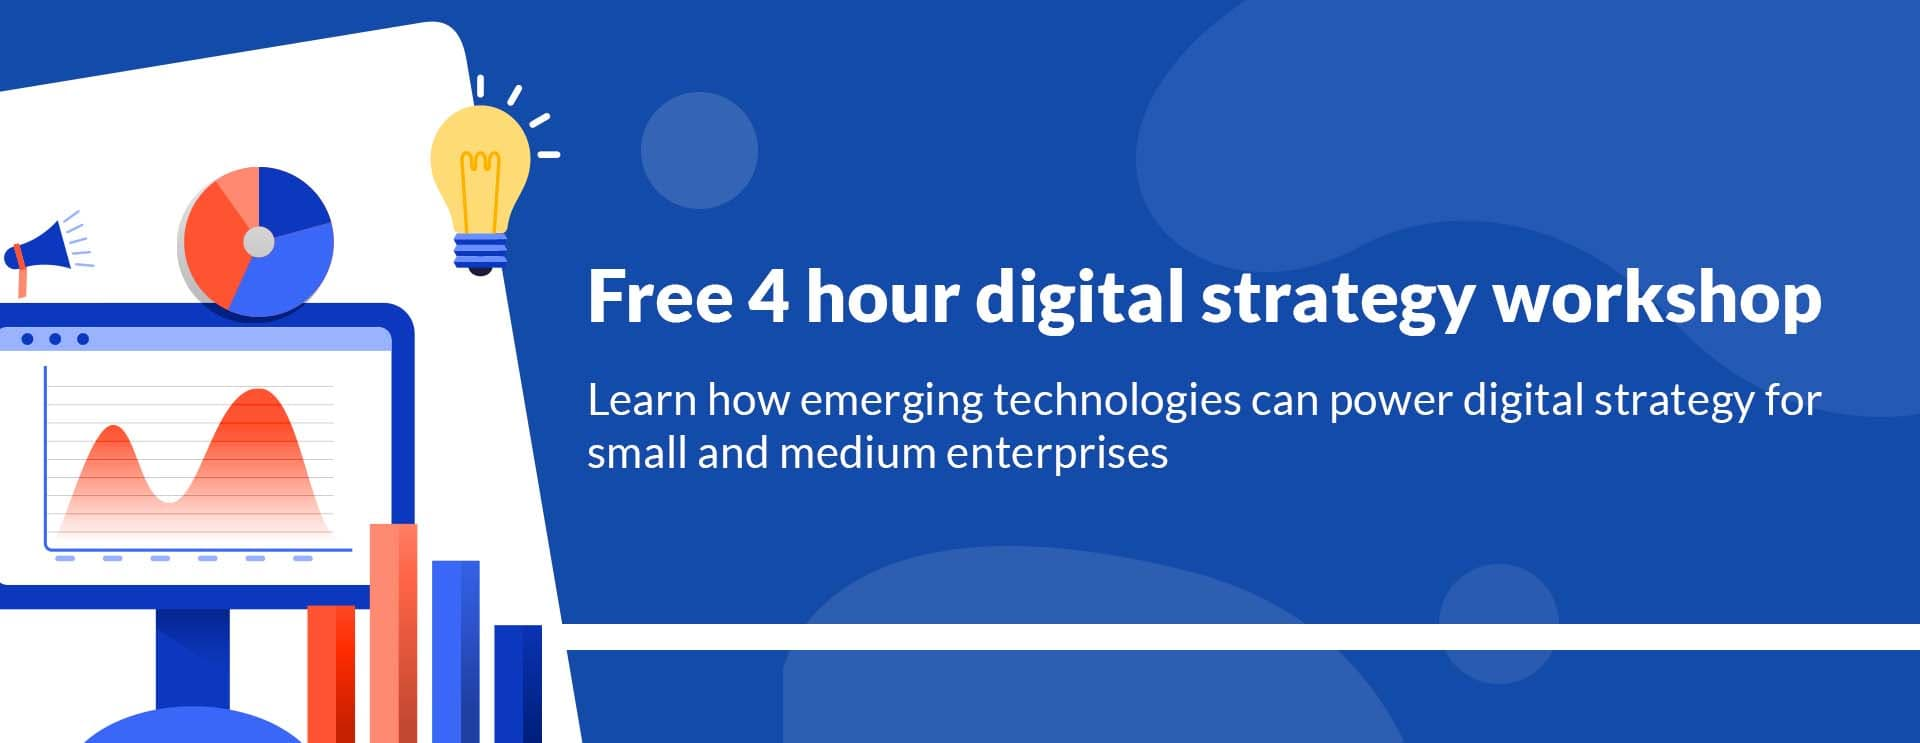 Digital Strategy Workshop for small and medium enterprises